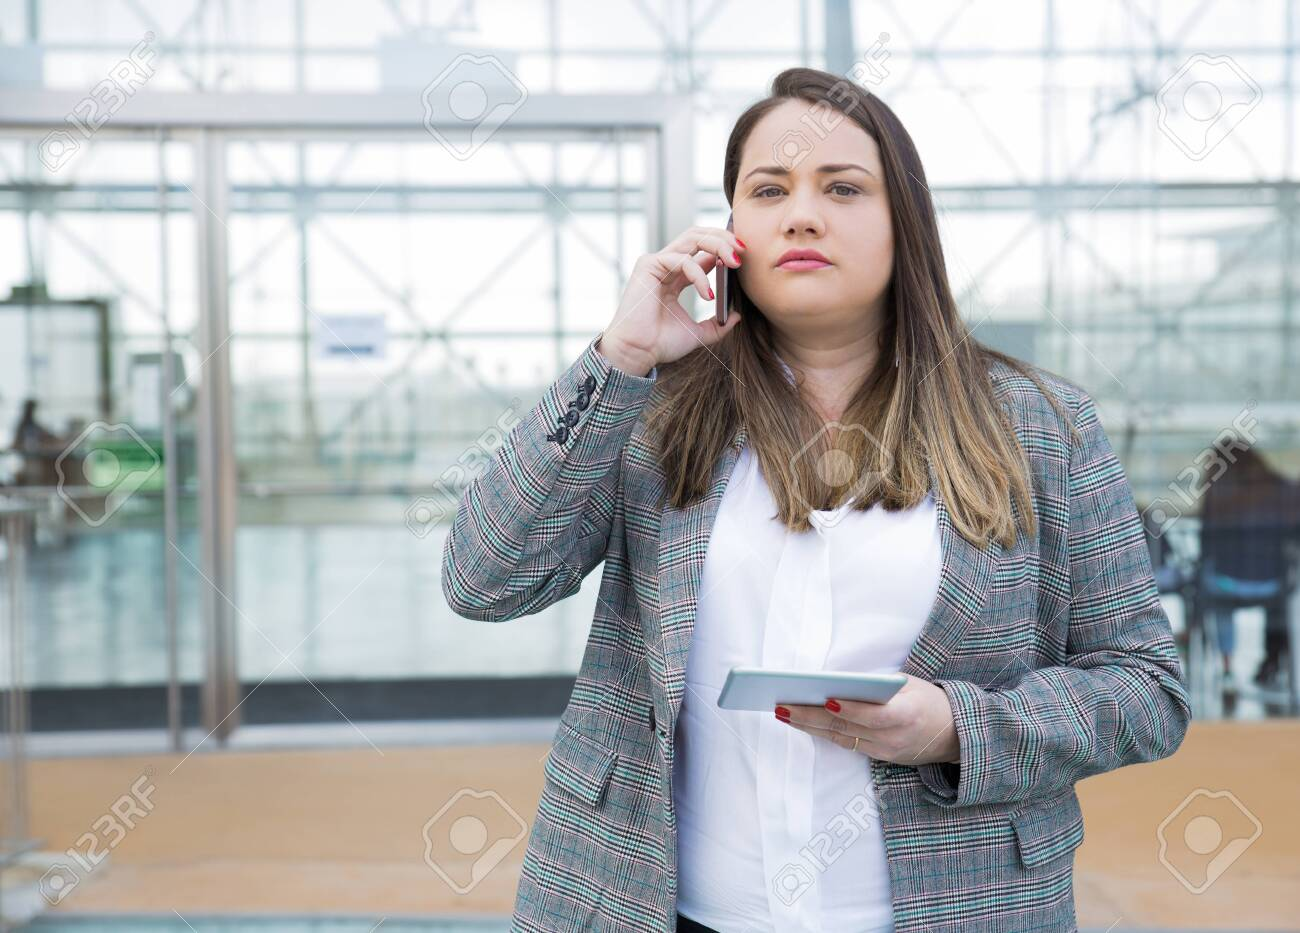 Serious female executive posing in office lobby while speaking on phone. Young woman in formal jacket holding tablet, talking on cell and looking at camera. Business and gadgets concept - 123136052